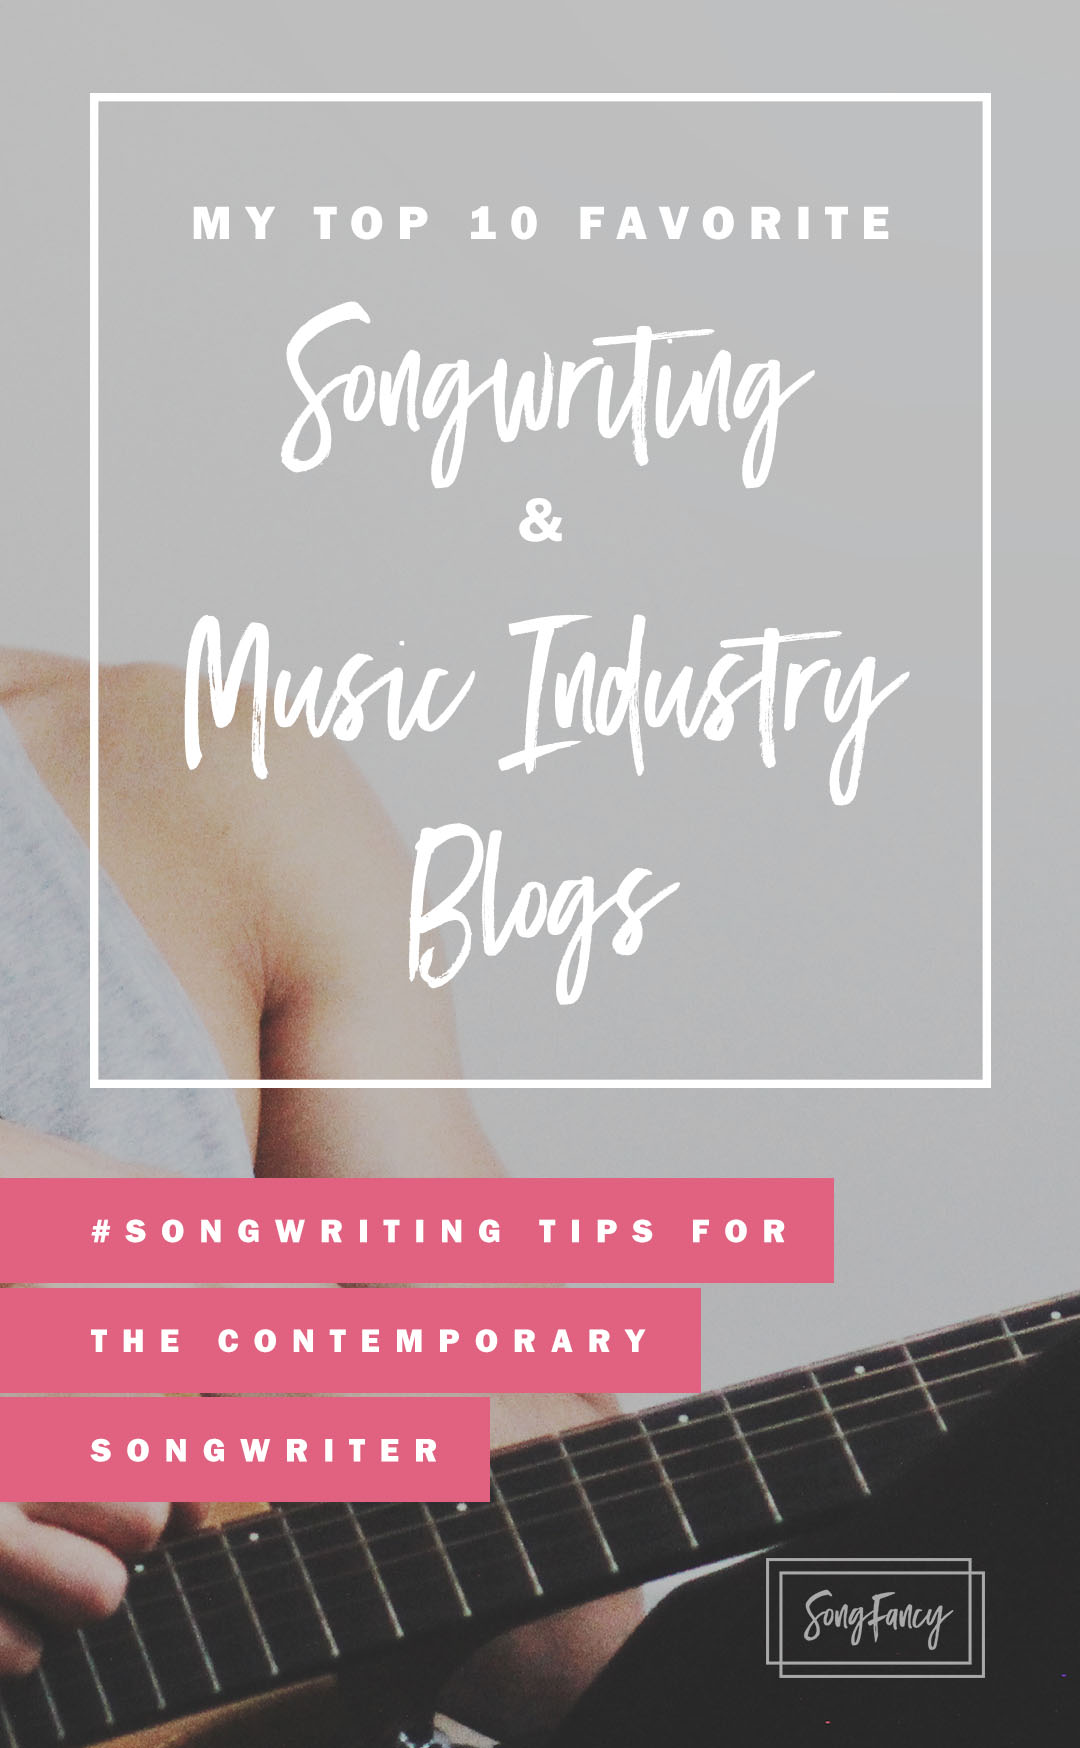 Music Industry Contacts, Music Venues, & Songwriting Tips